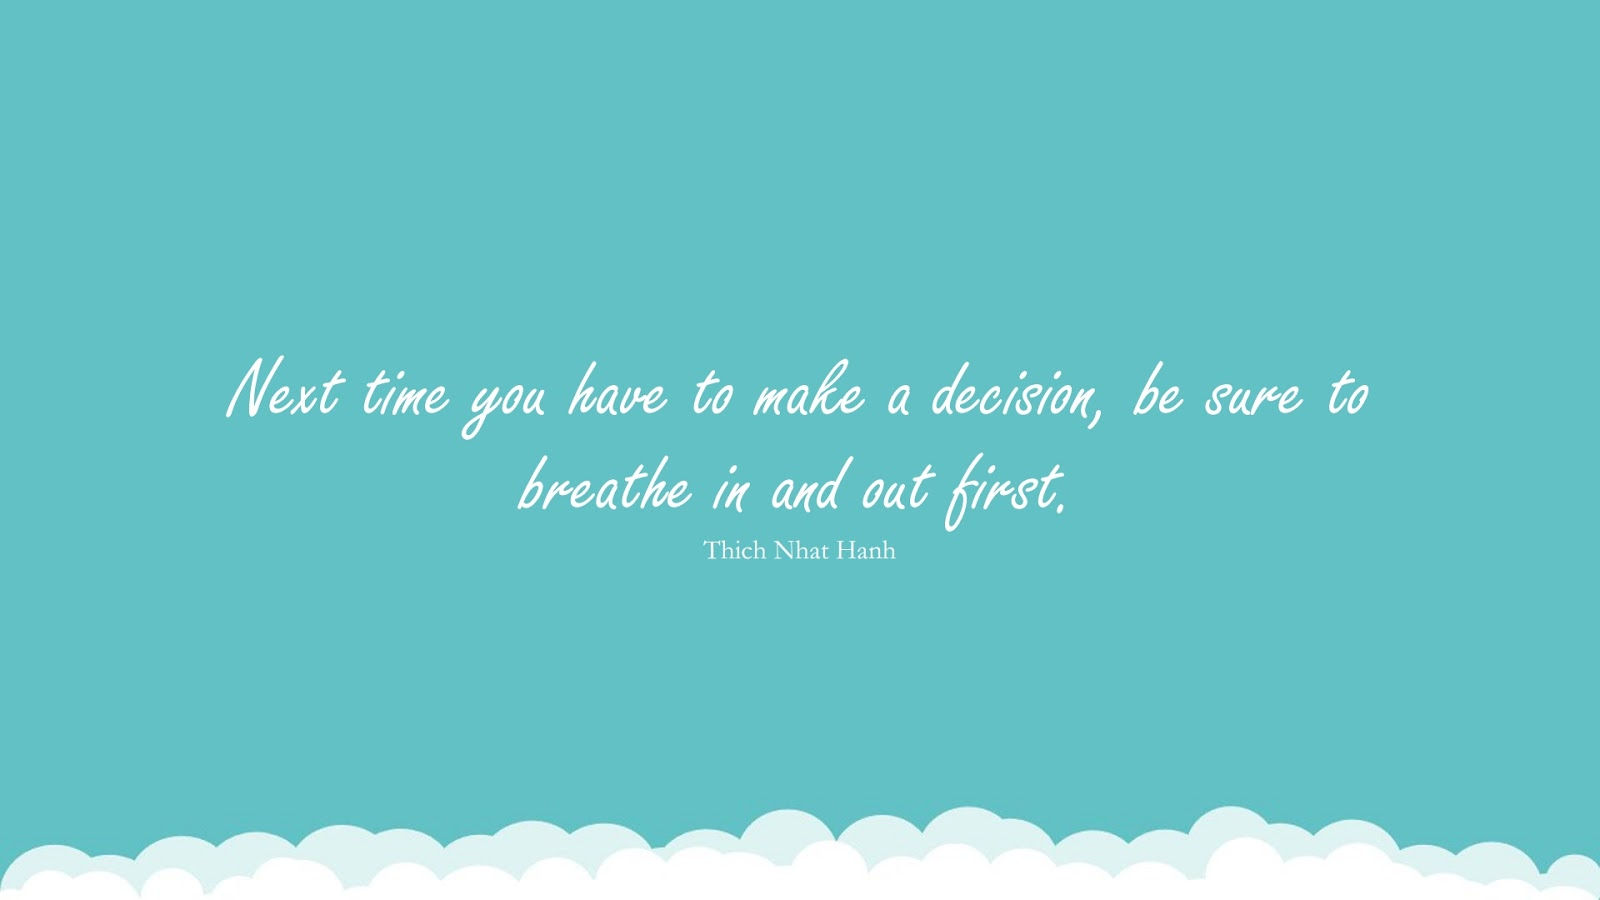 Next time you have to make a decision, be sure to breathe in and out first. (Thich Nhat Hanh);  #CalmQuotes